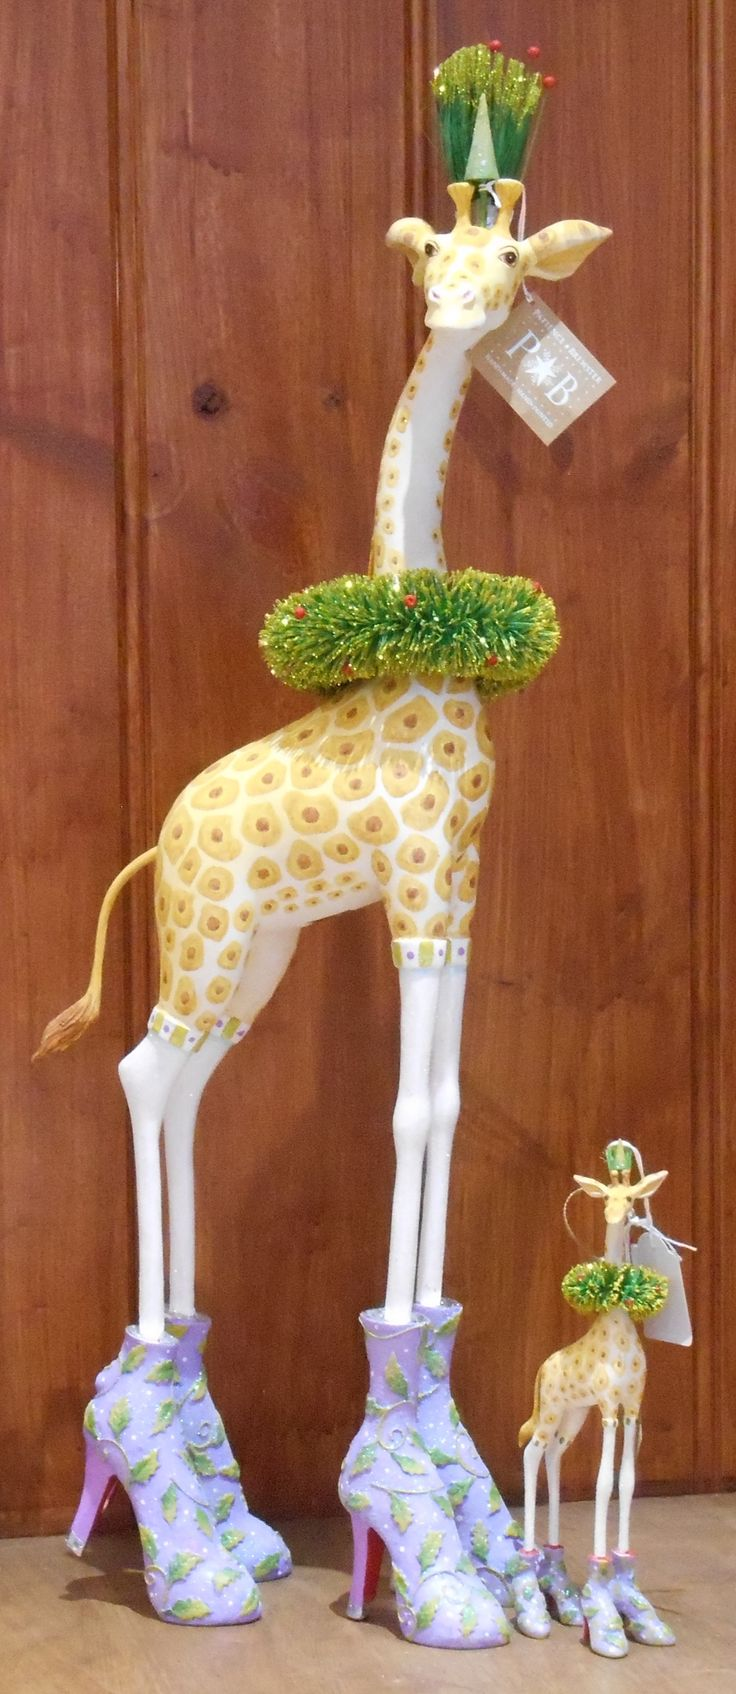 Janet Giraffe....New in is our funky Patience Brewster Collection. You'll find it in our Gift Shop. Patience Brewster, Inc. is a small one artist company creating unique handcrafted ornaments, gifts and textiles from start to finish.